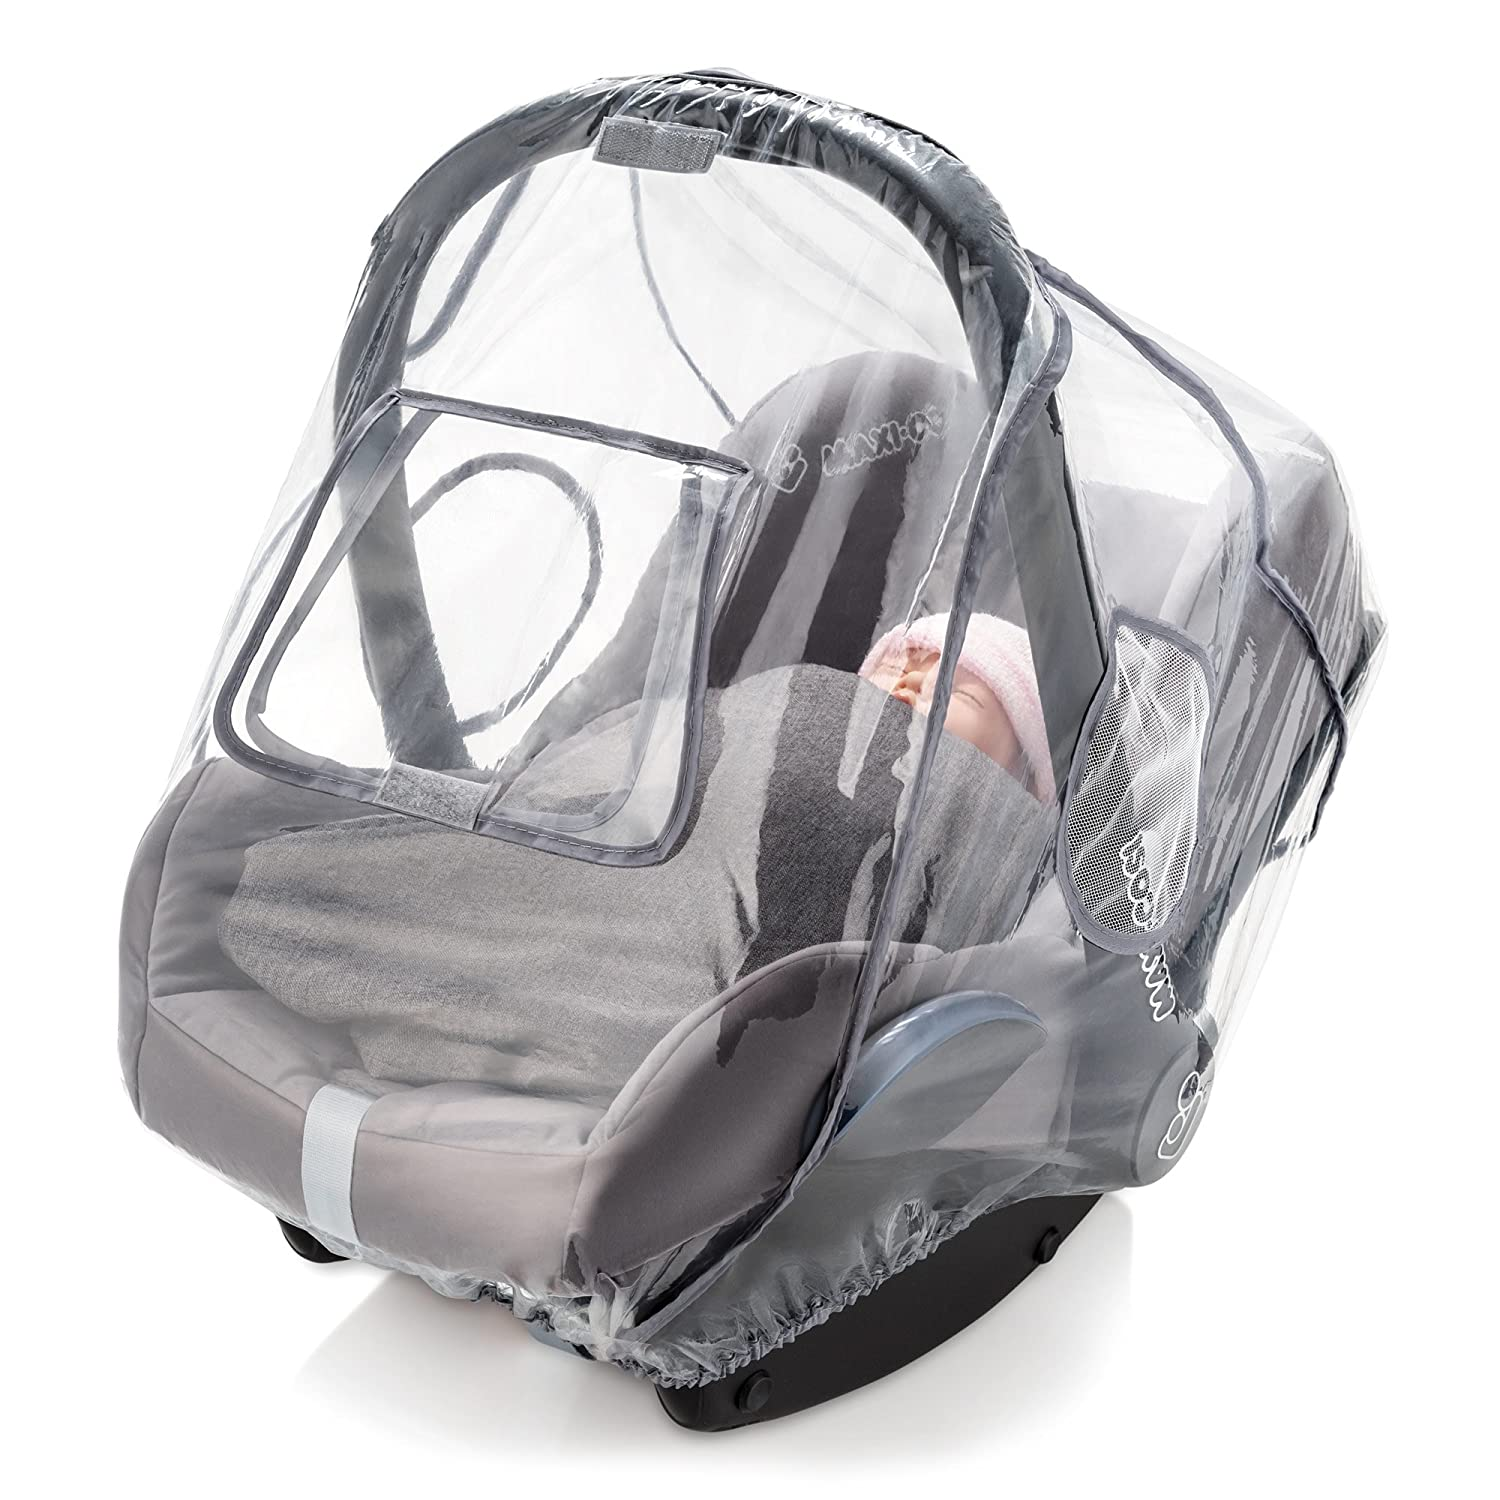 Ideal Air Circulation e.g. Maxi Cosi // Cybex // Graco // Britax // Joie // Cosatto Universal Infant Car Seat Raincover Grey Roll-Up Window and Opening to Simplify Carrying PVC-Free Zamboo